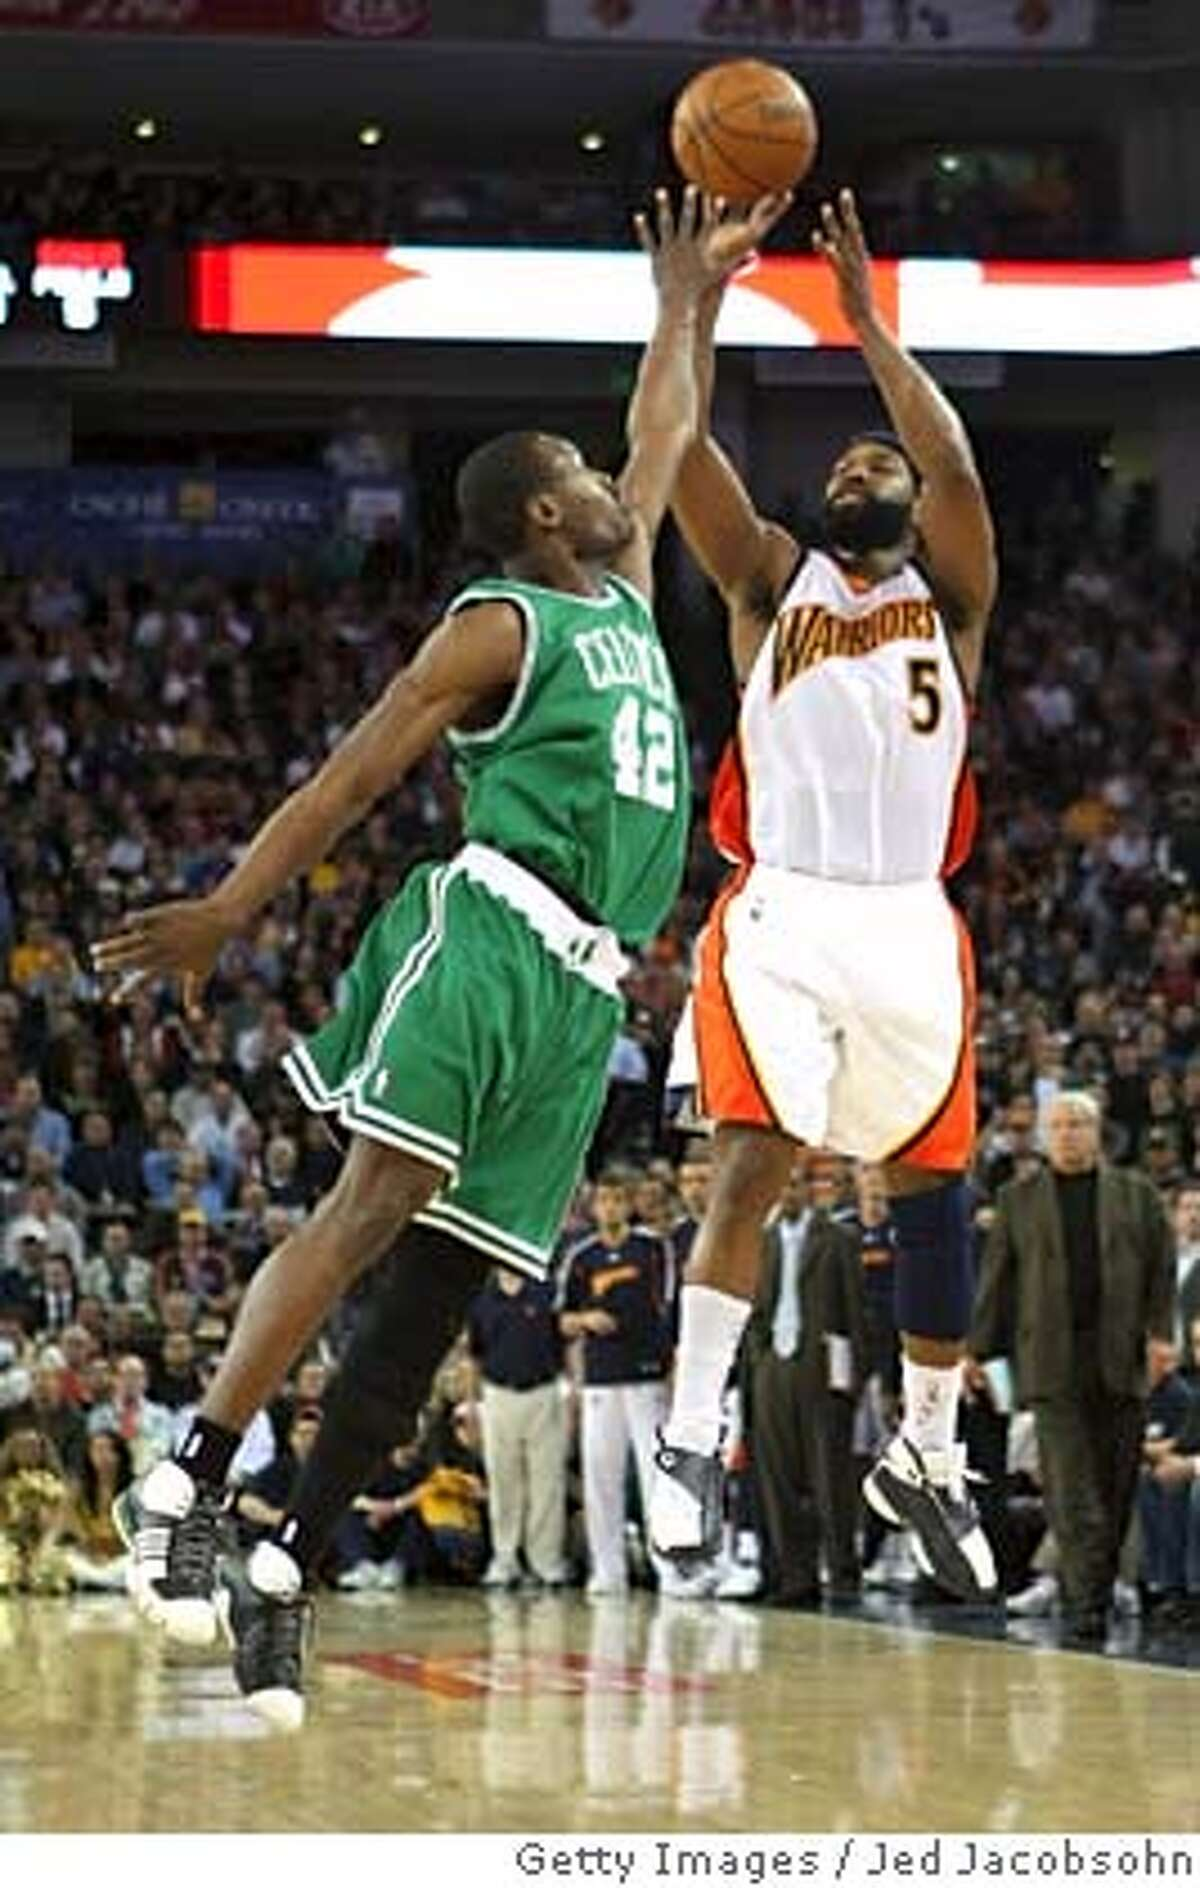 OAKLAND, CA - FEBRUARY 20: Baron Davis #5 of the Golden State Warriors shoots over Tony Allen #42 of the Boston Celtics during an NBA game on February 20, 2008 at Oracle Arena in Oakland, California. NOTE TO USER: User expressly acknowledges and agrees that, by downloading and or using this photograph, User is consenting to the terms and conditions of the Getty Images License Agreement. (Photo by Jed Jacobsohn/Getty Images)